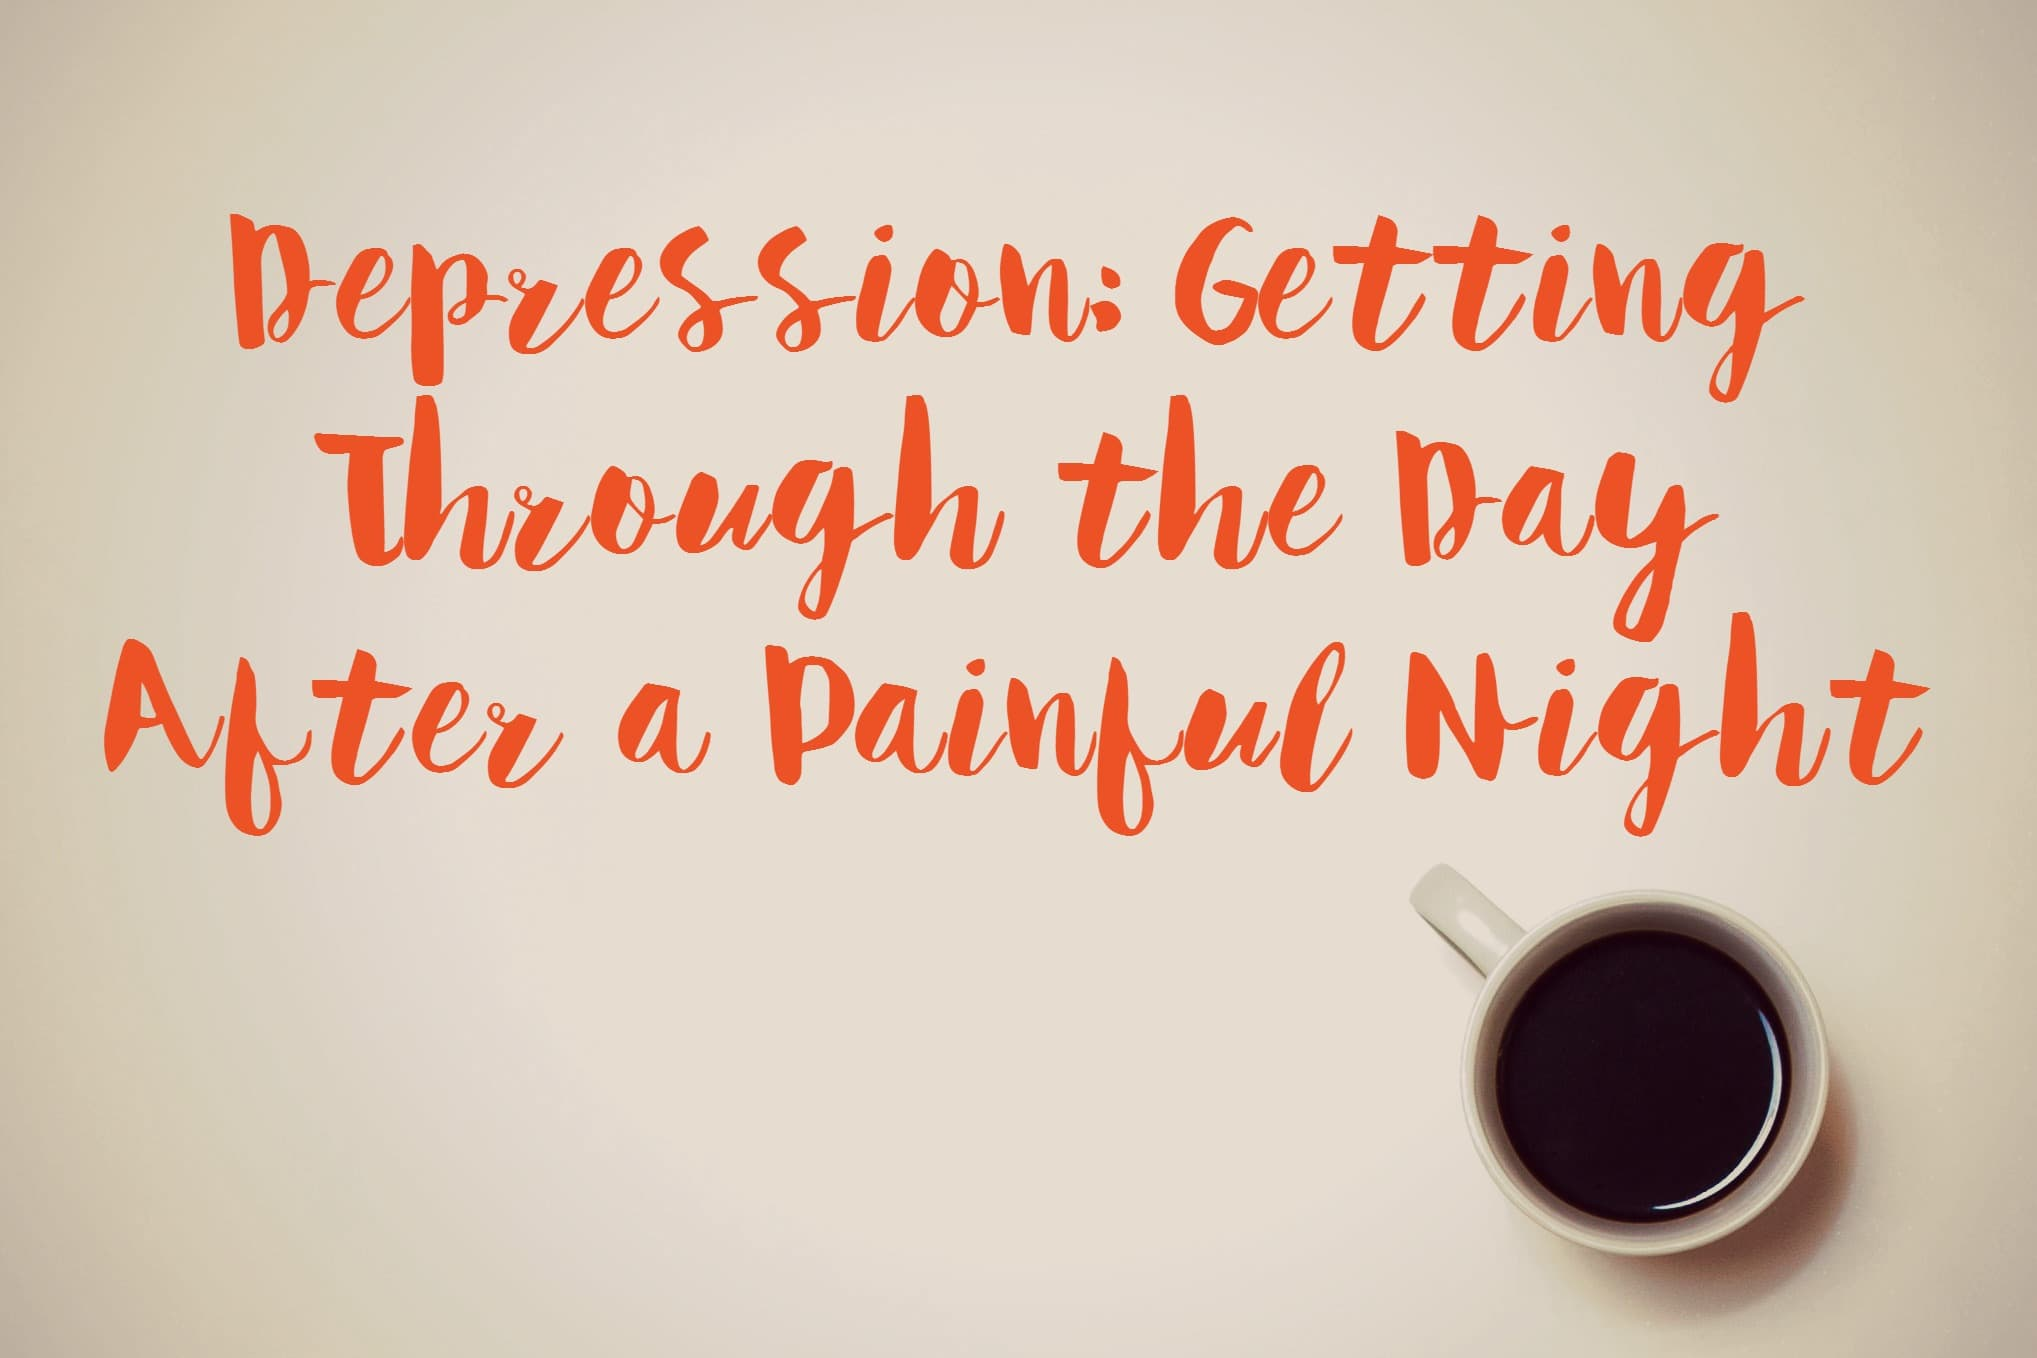 Depression - getting through day after a painful night